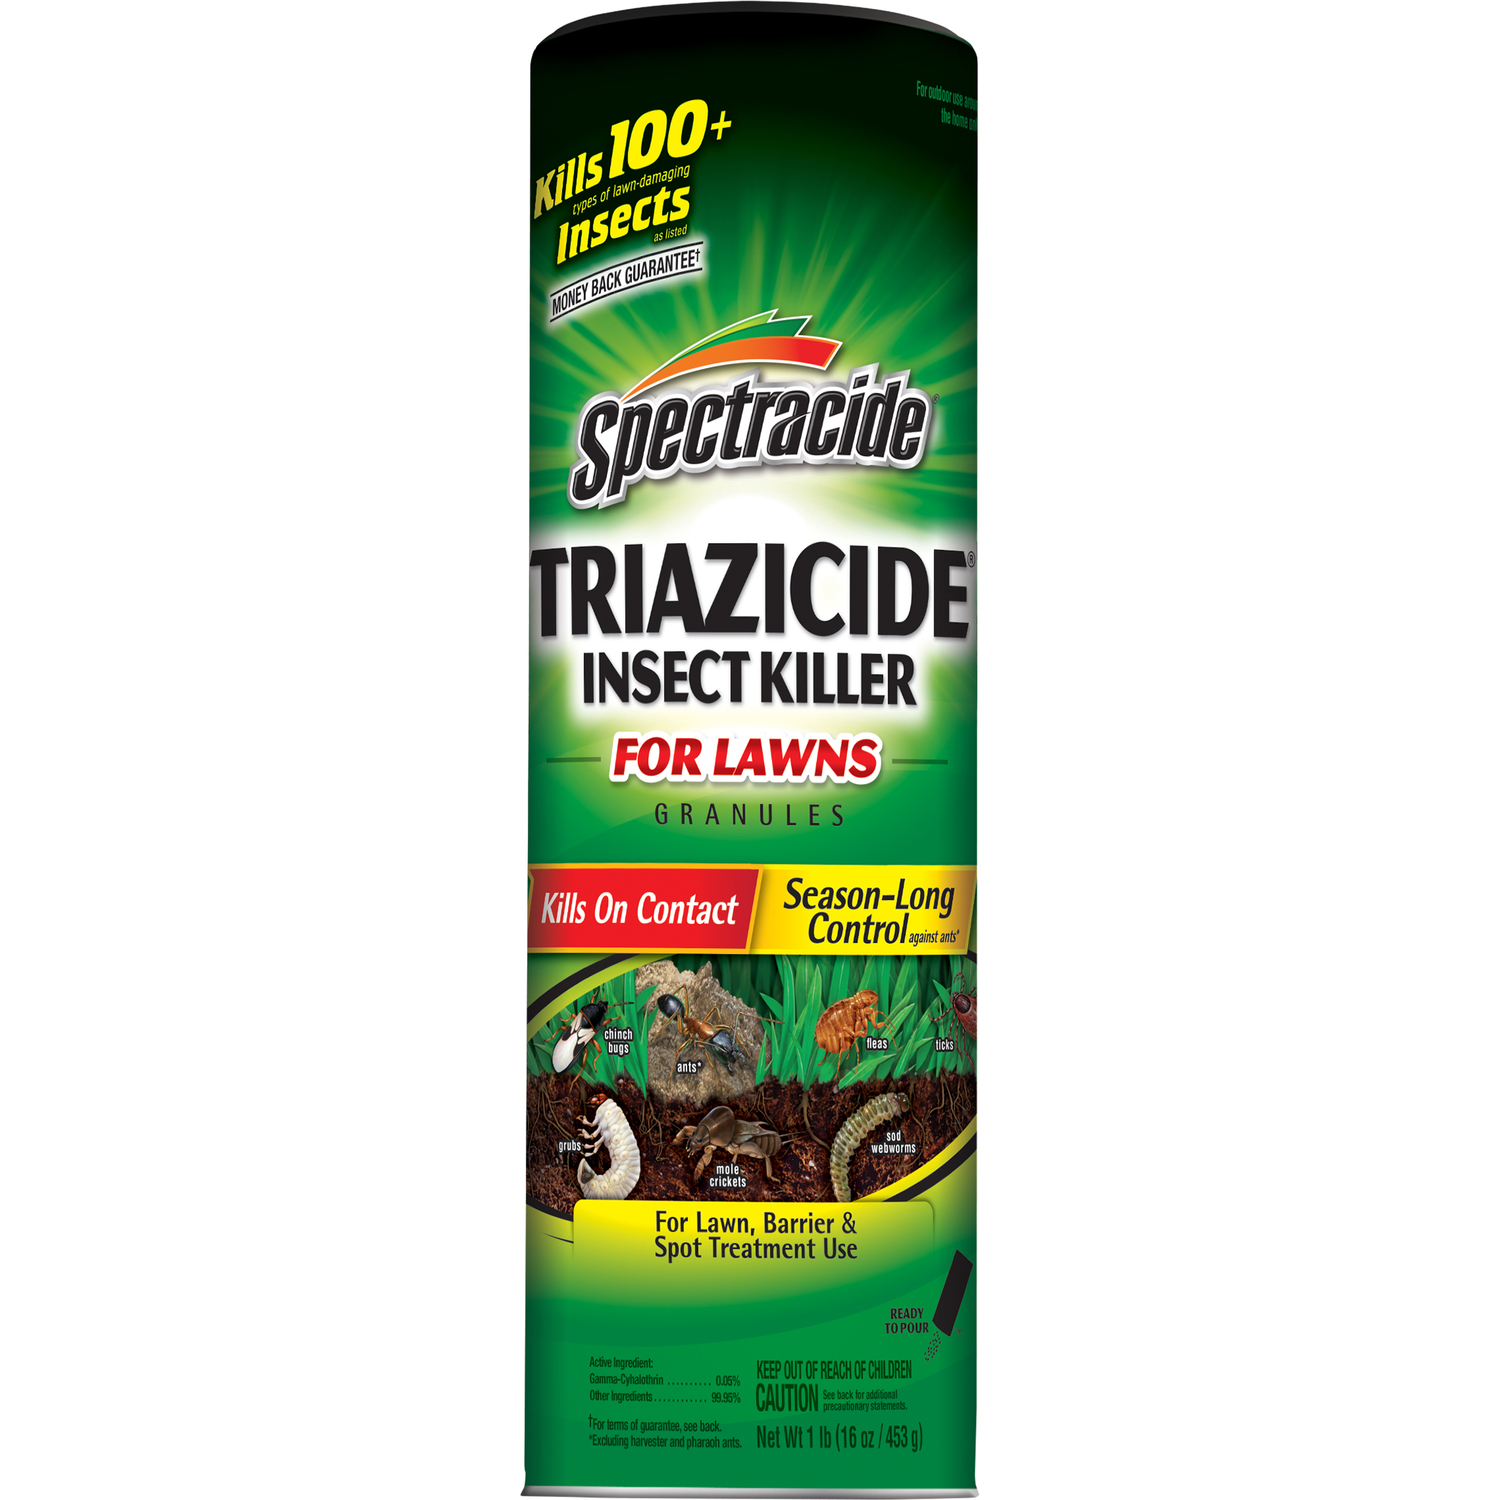 Spectracide  Triazicide for Lawns  Insect Killer for Lawns  1